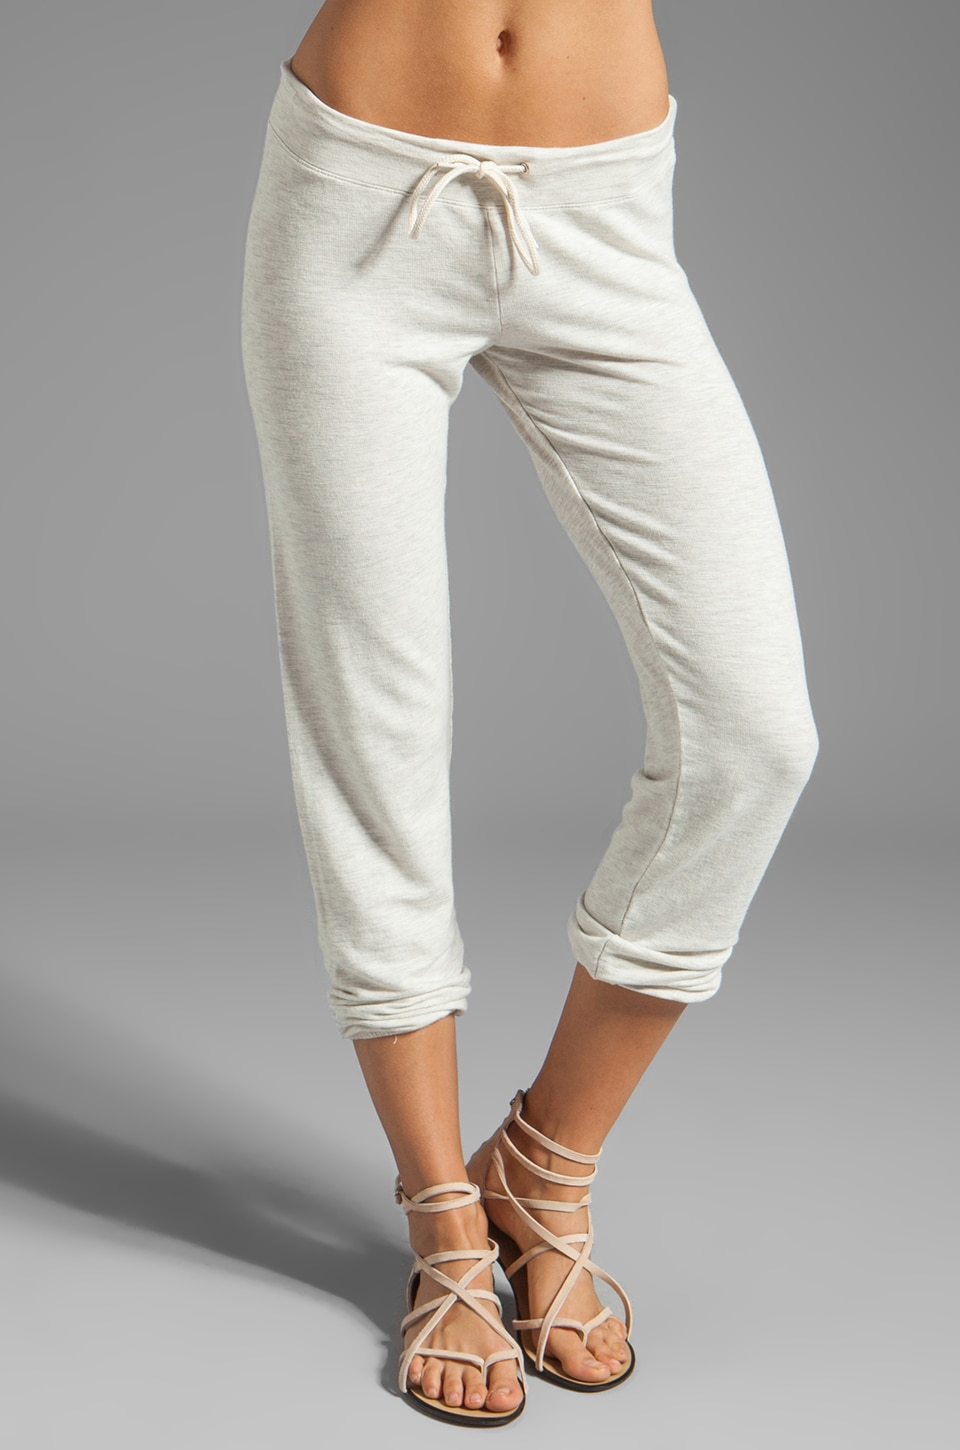 MONROW French Terry Super Soft Vintage Sweats in Ash